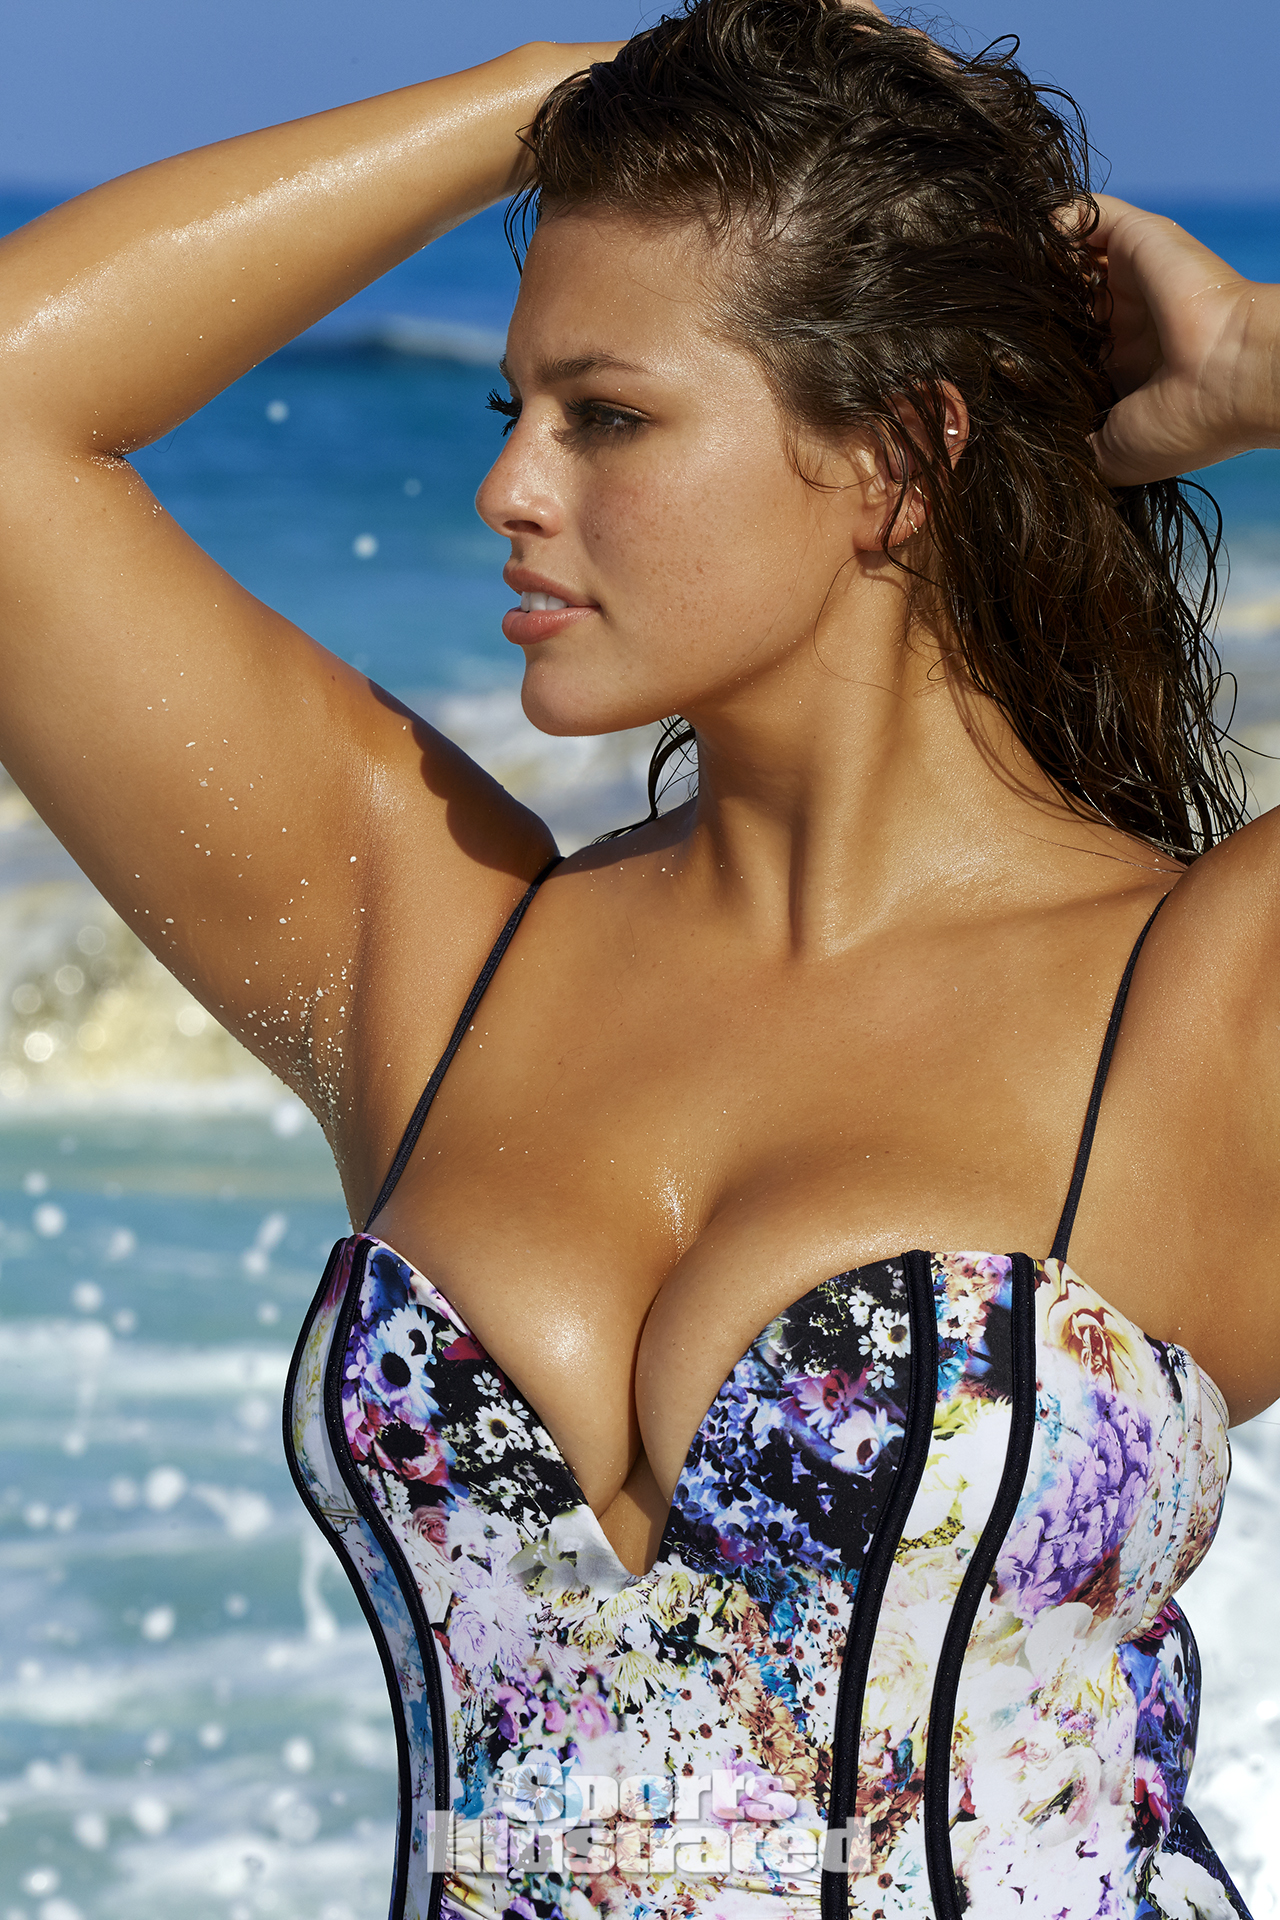 Ashley Graham was photographed by James Macari in Turks & Caicos. Swimsuit by Robyn Lawley.